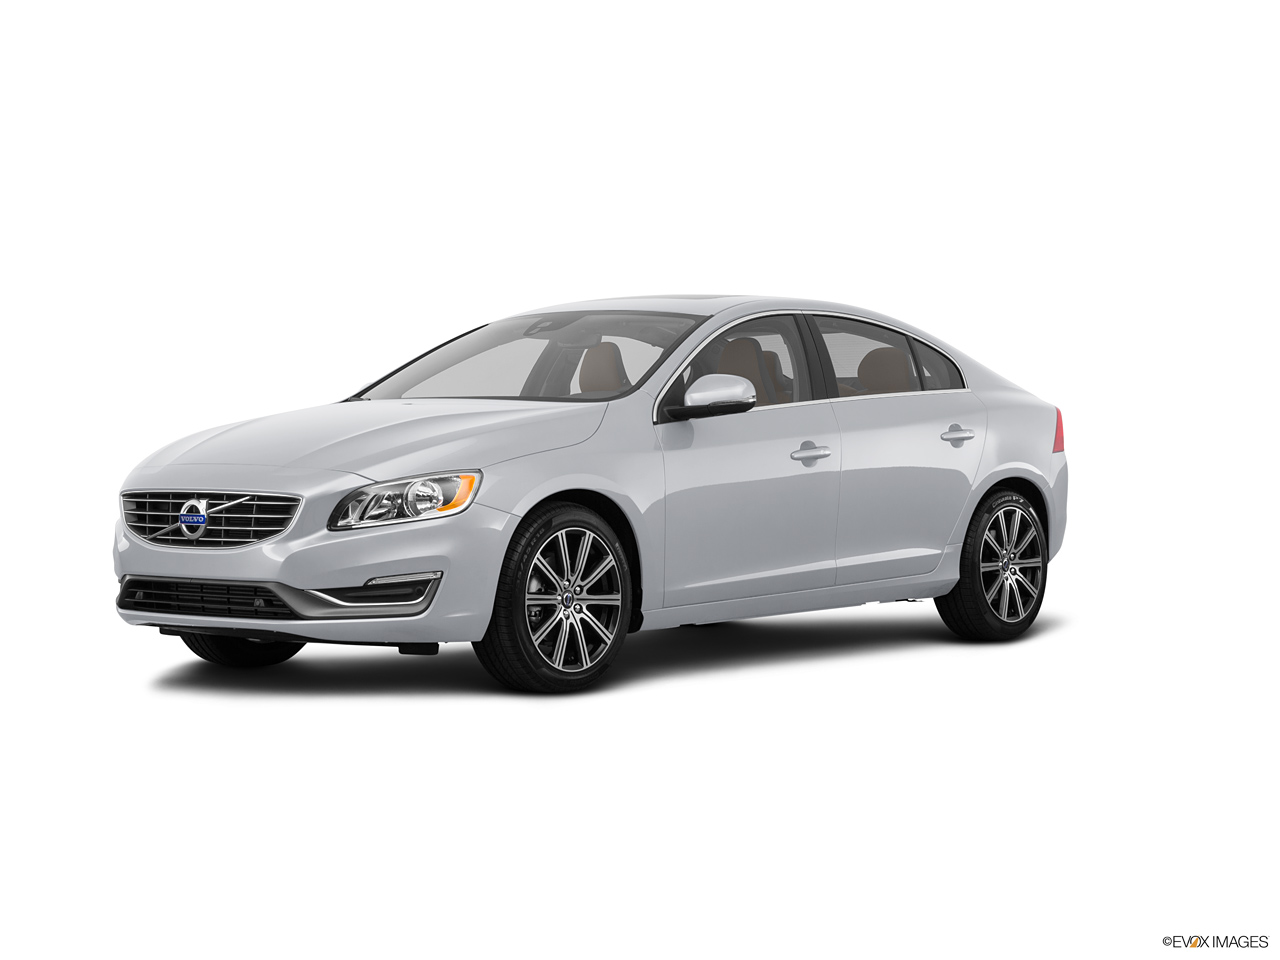 volvo s60 2017 3 0 t6 r design in qatar new car prices specs reviews photos yallamotor. Black Bedroom Furniture Sets. Home Design Ideas